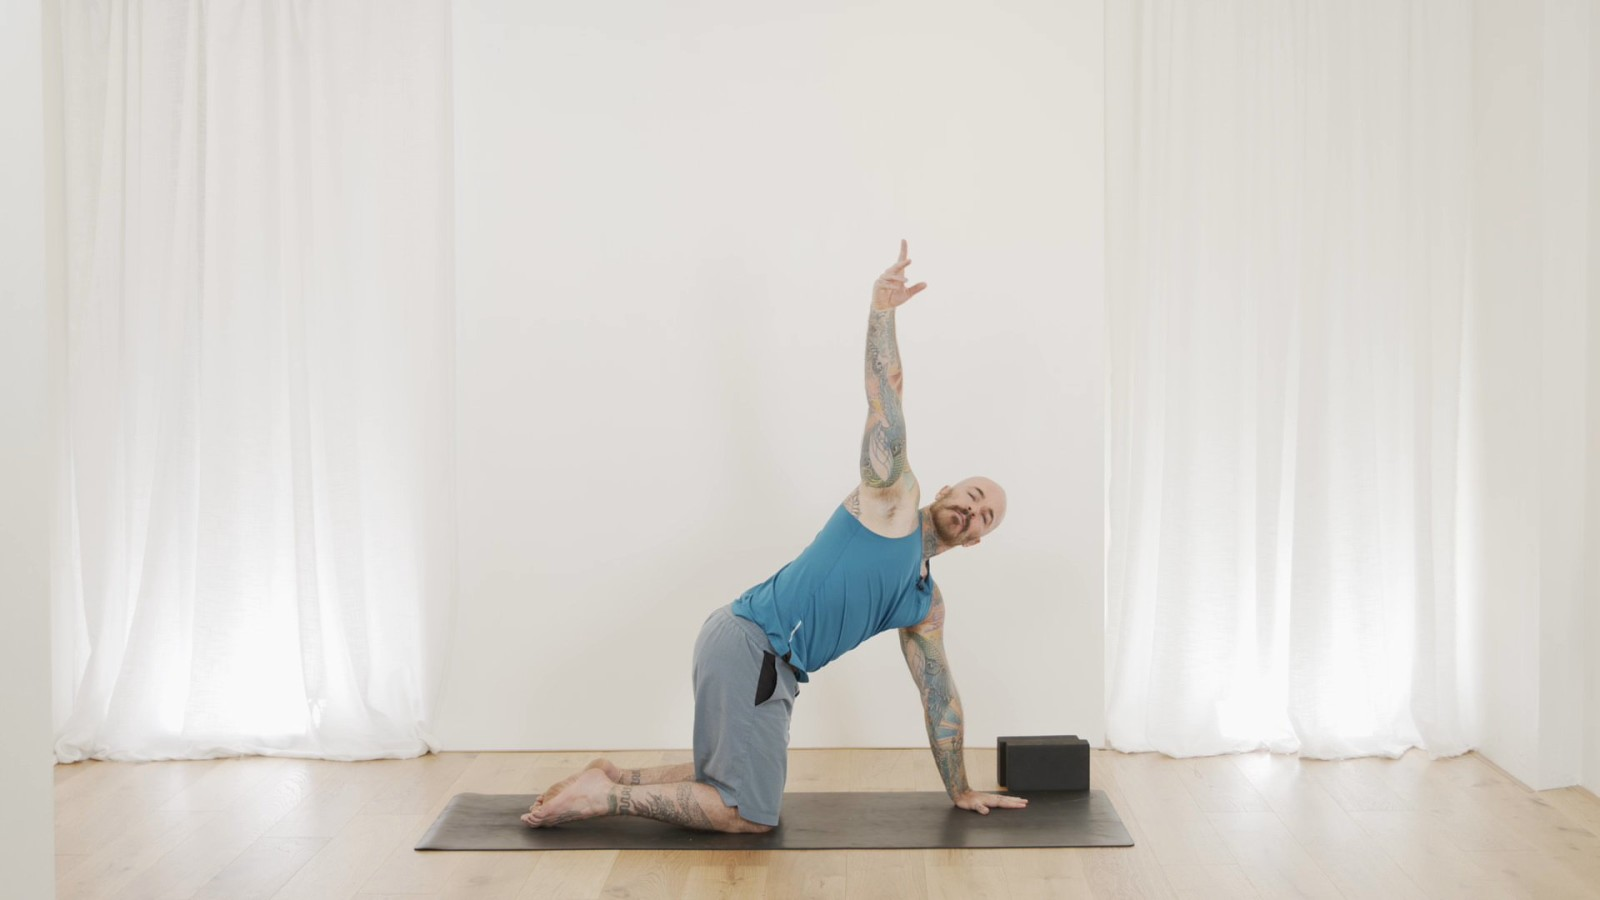 Yoga Foundations - Finding Your Breath with Ari Levanael